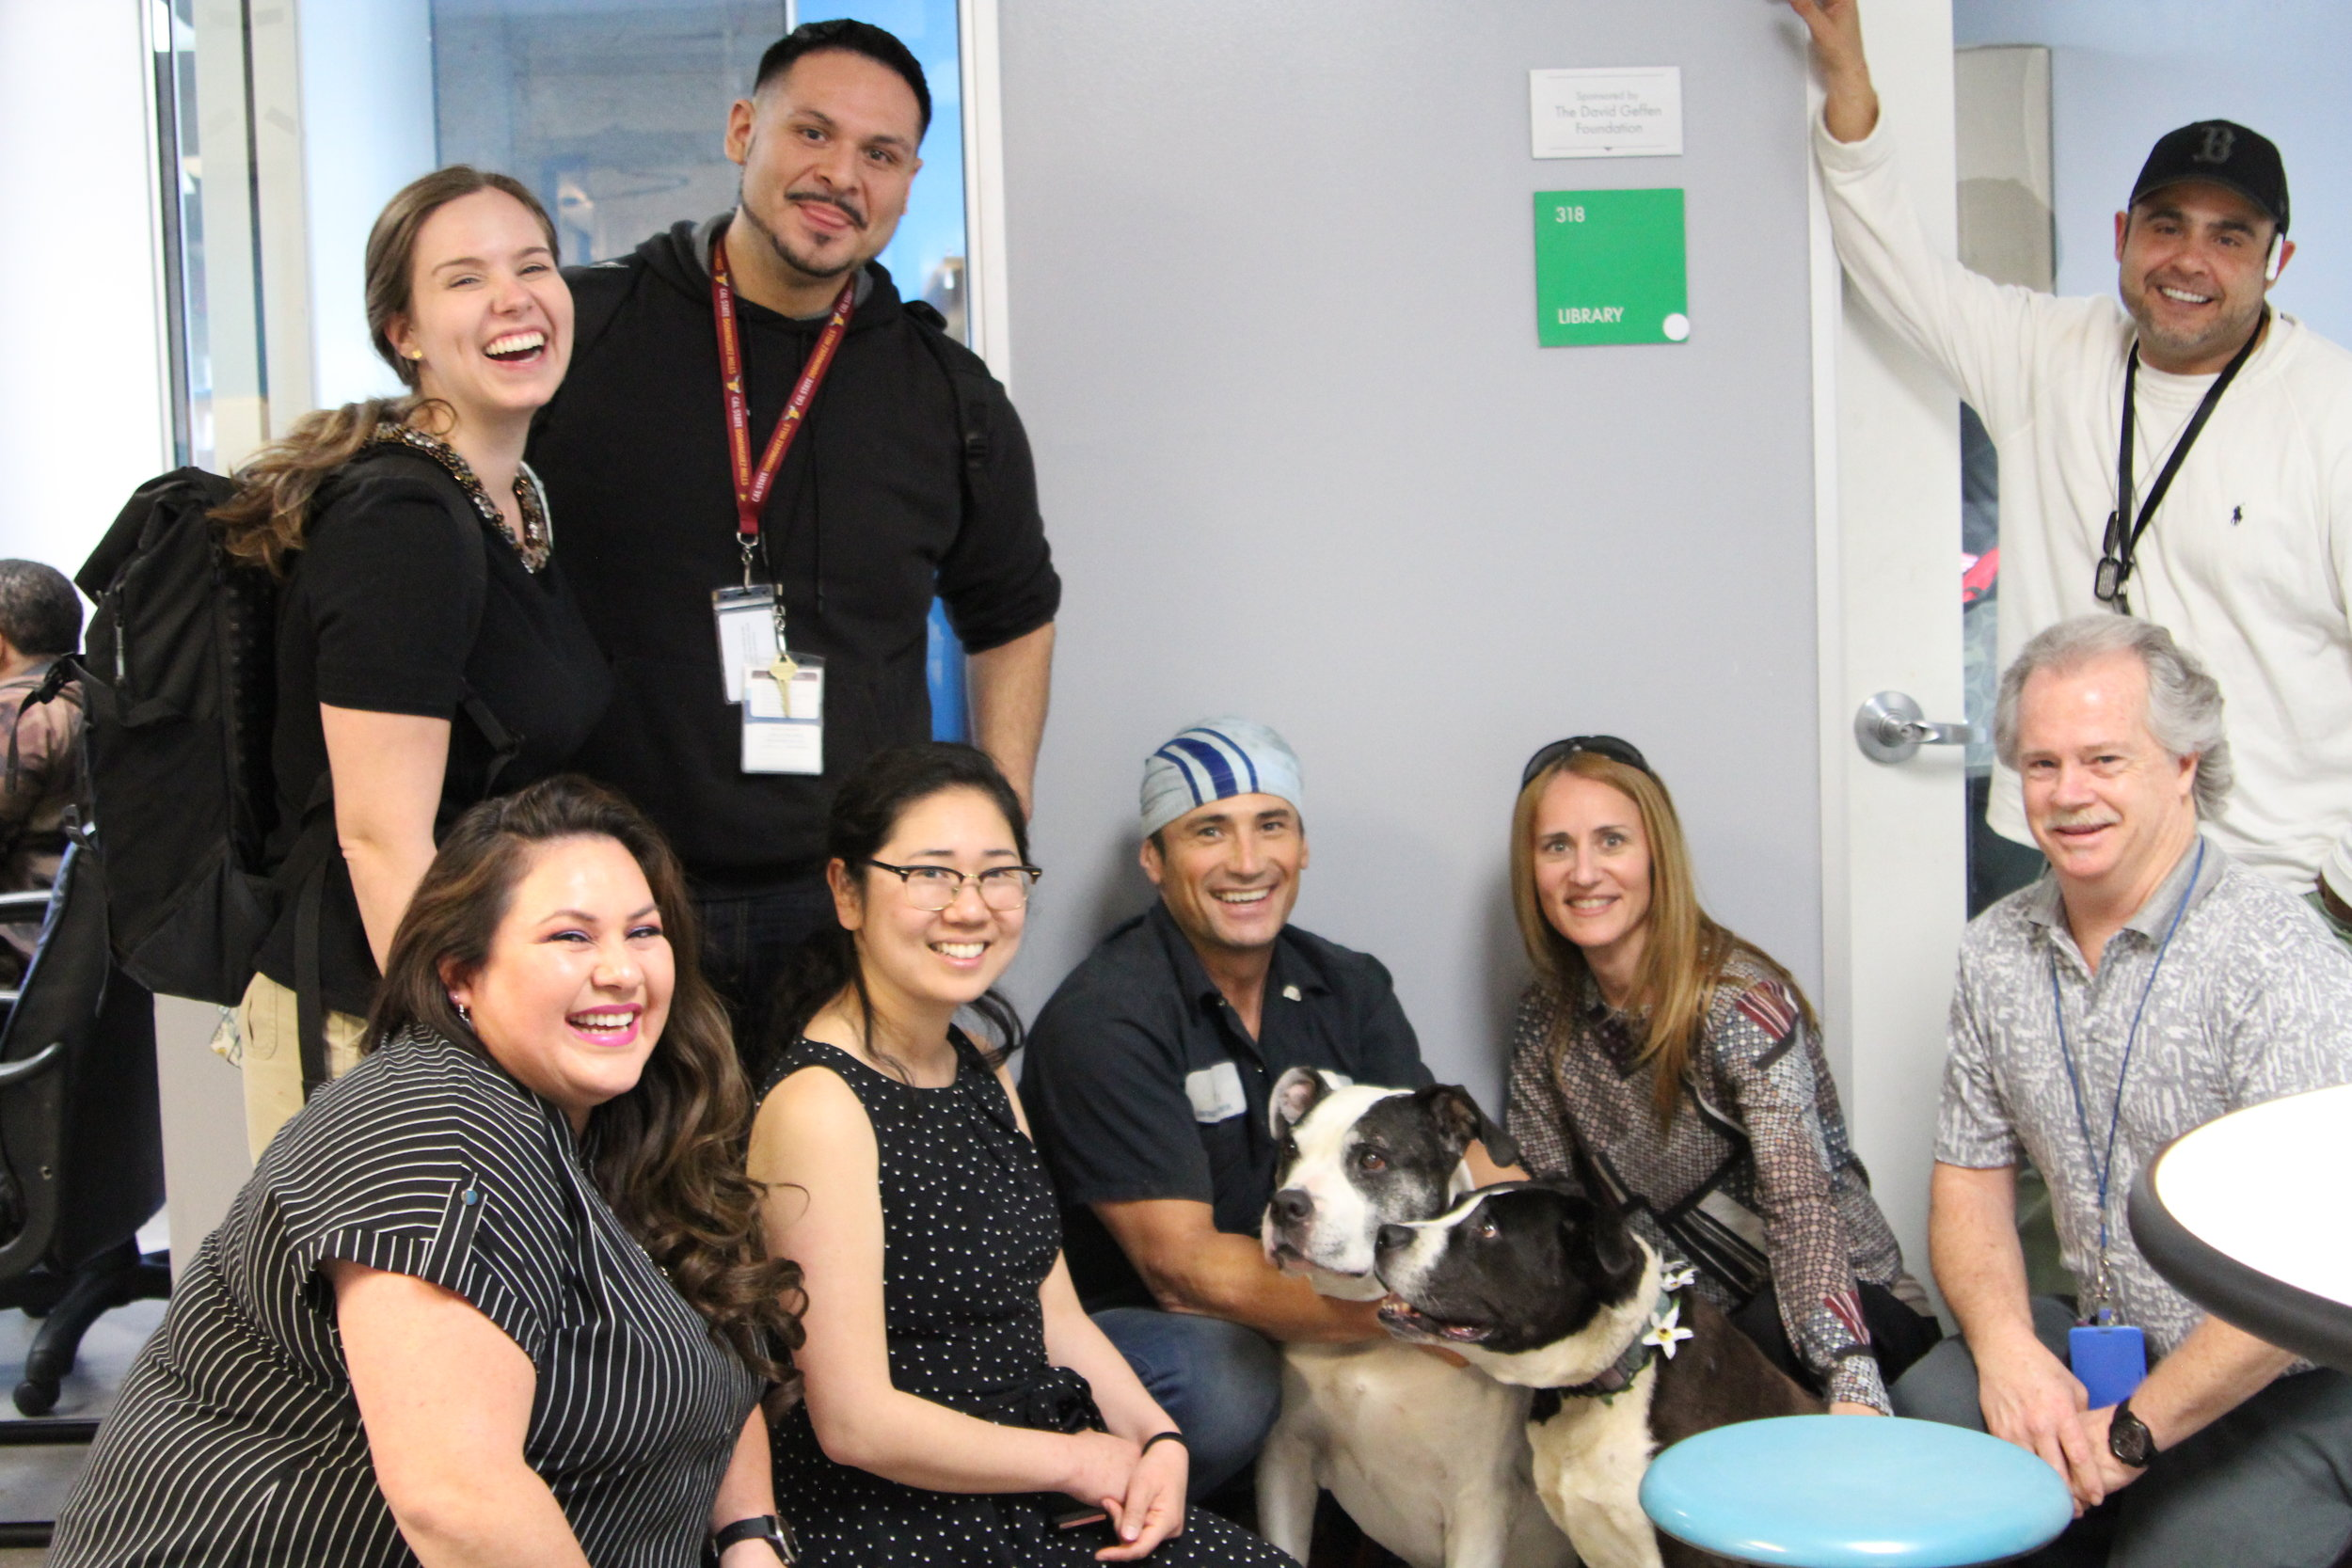 Staff and clients from My Dog is My Home, PATH, and Bark Avenue Foundation after training.